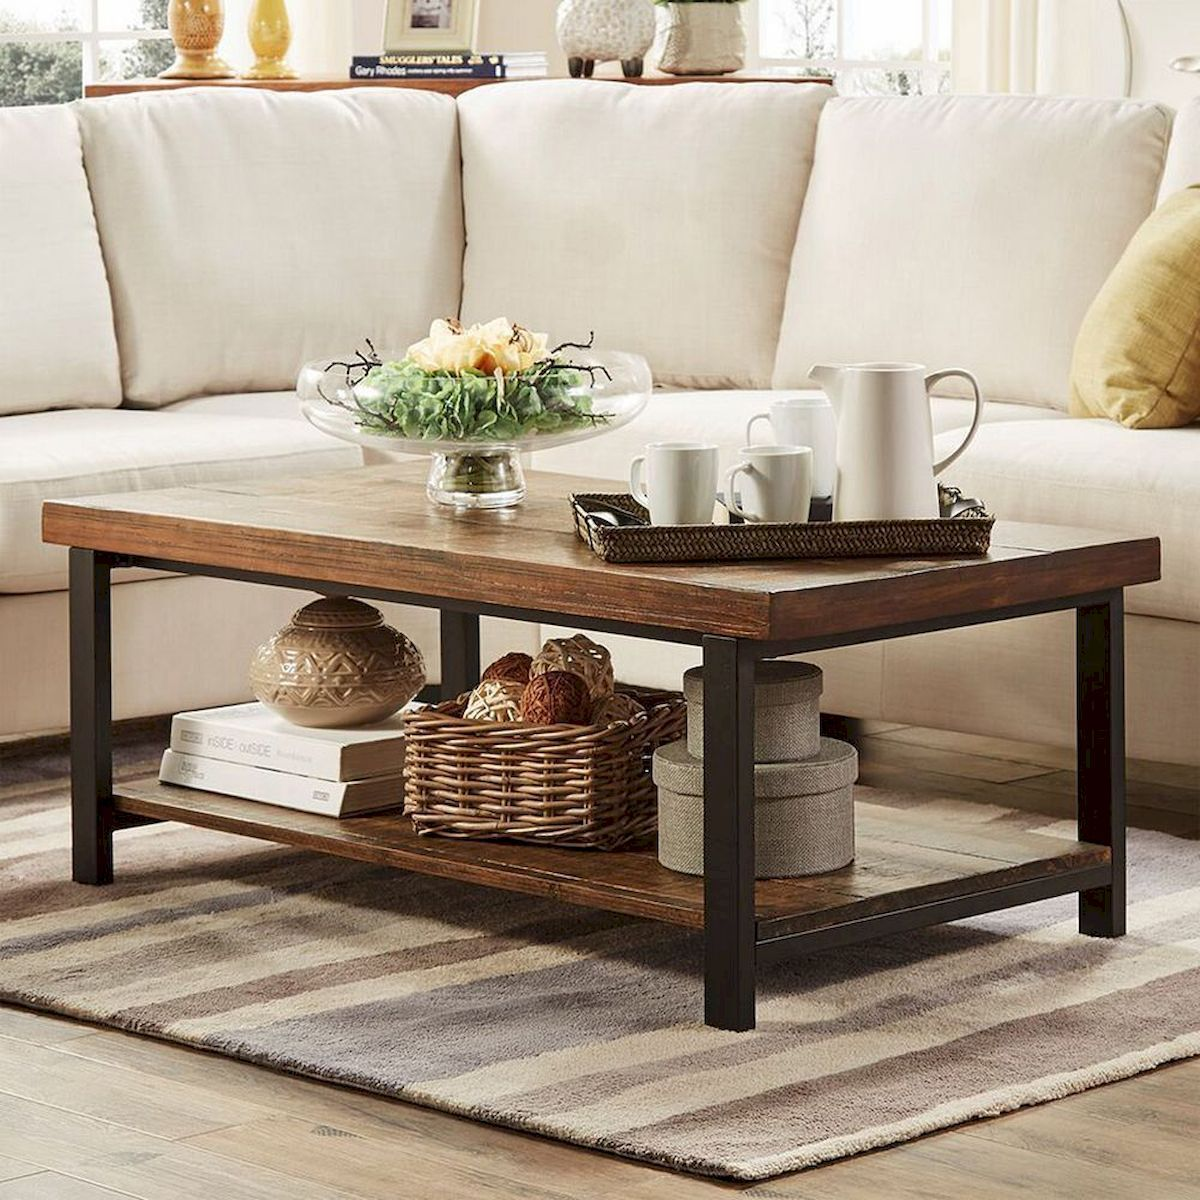 46 Farmhouse Tables Decoration Ideas images